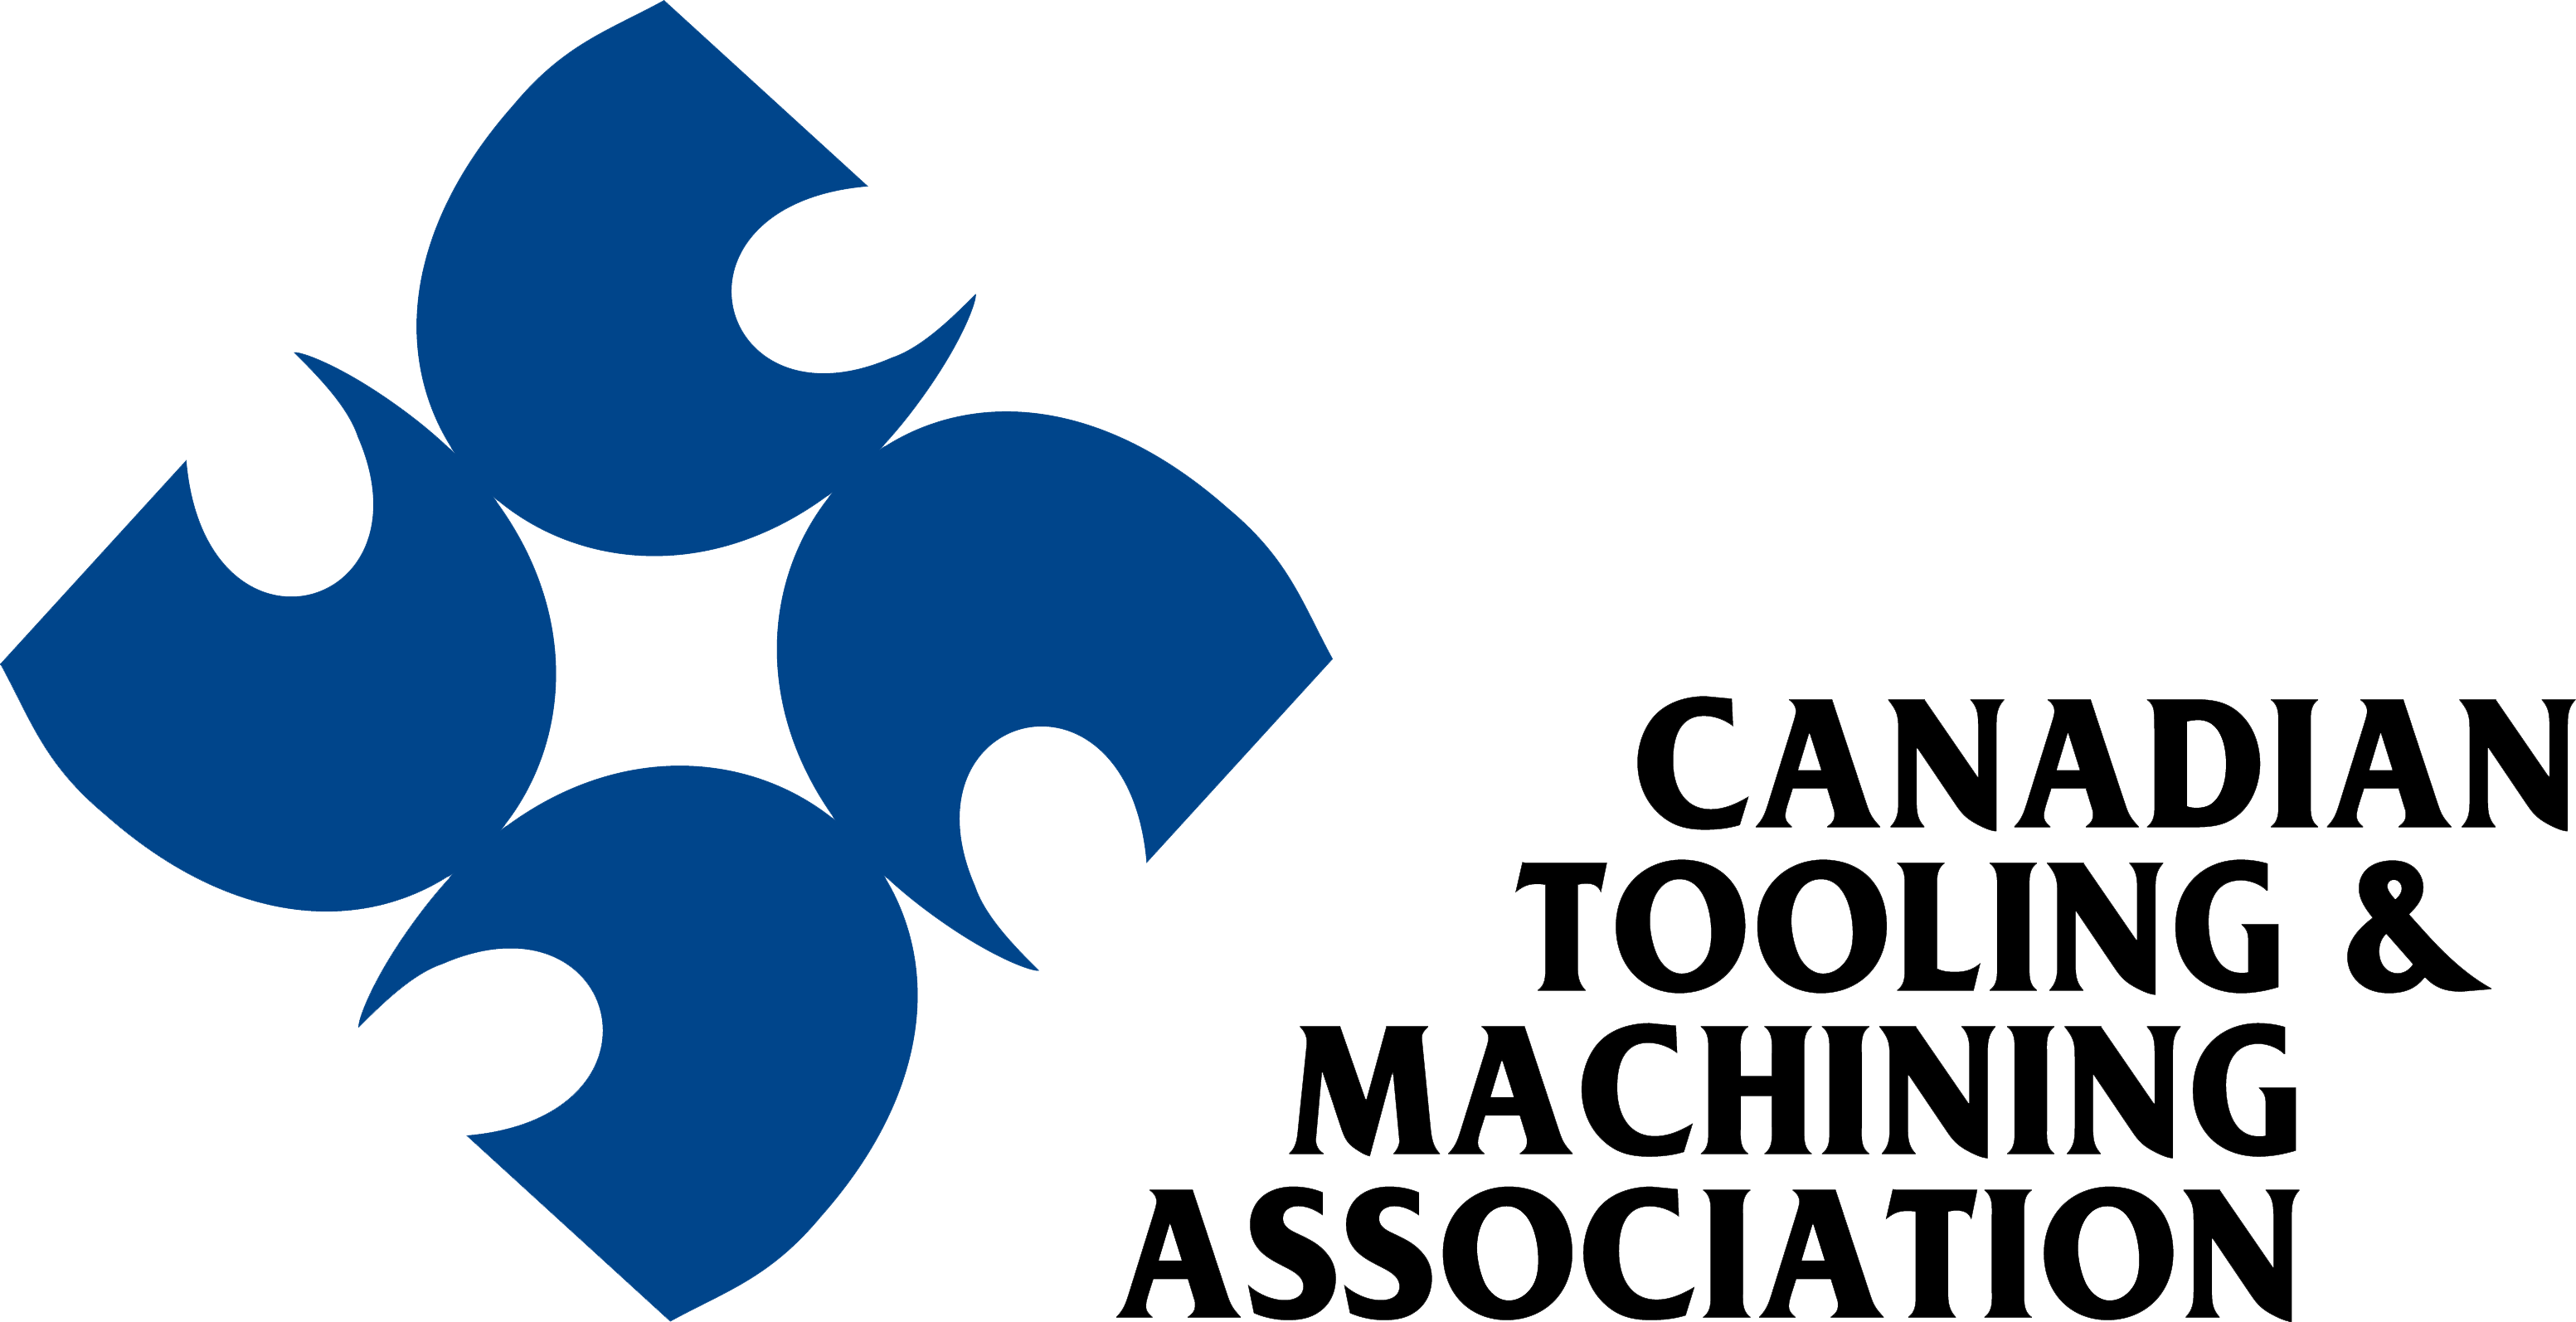 Canadian Tooling & Machining Association